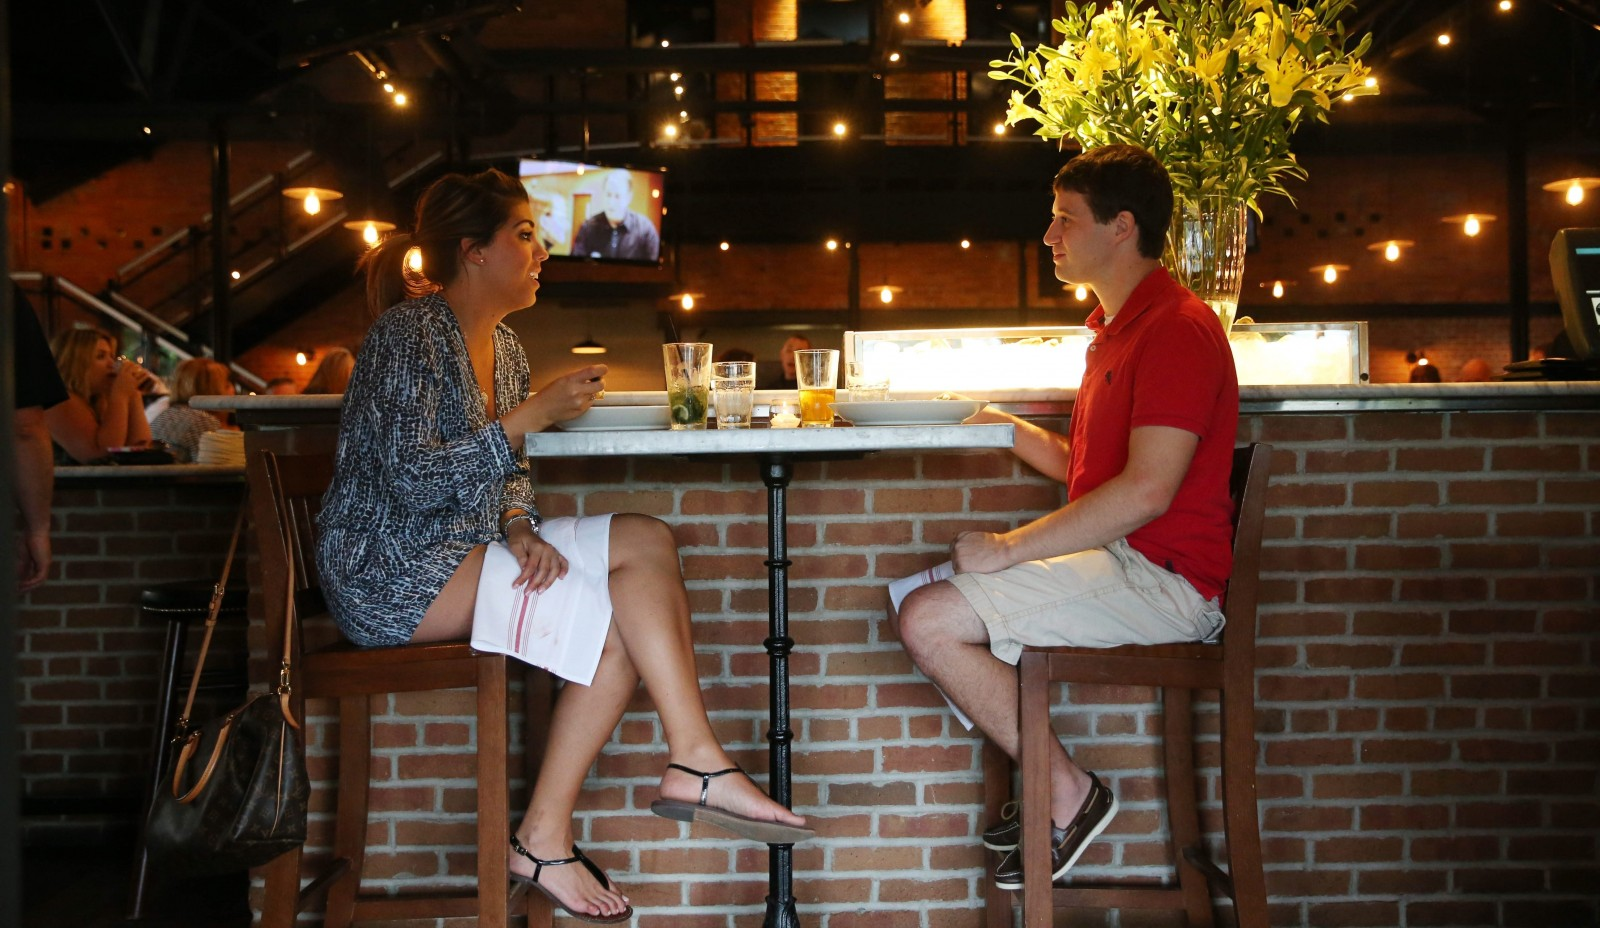 Rachel O'Connor and John Valkwitch of Amherst have dinner and drinks at the end of the horseshoe-shaped bar at the Remington Tavern in North Tonawanda. (Sharon Cantillon/Buffalo News)